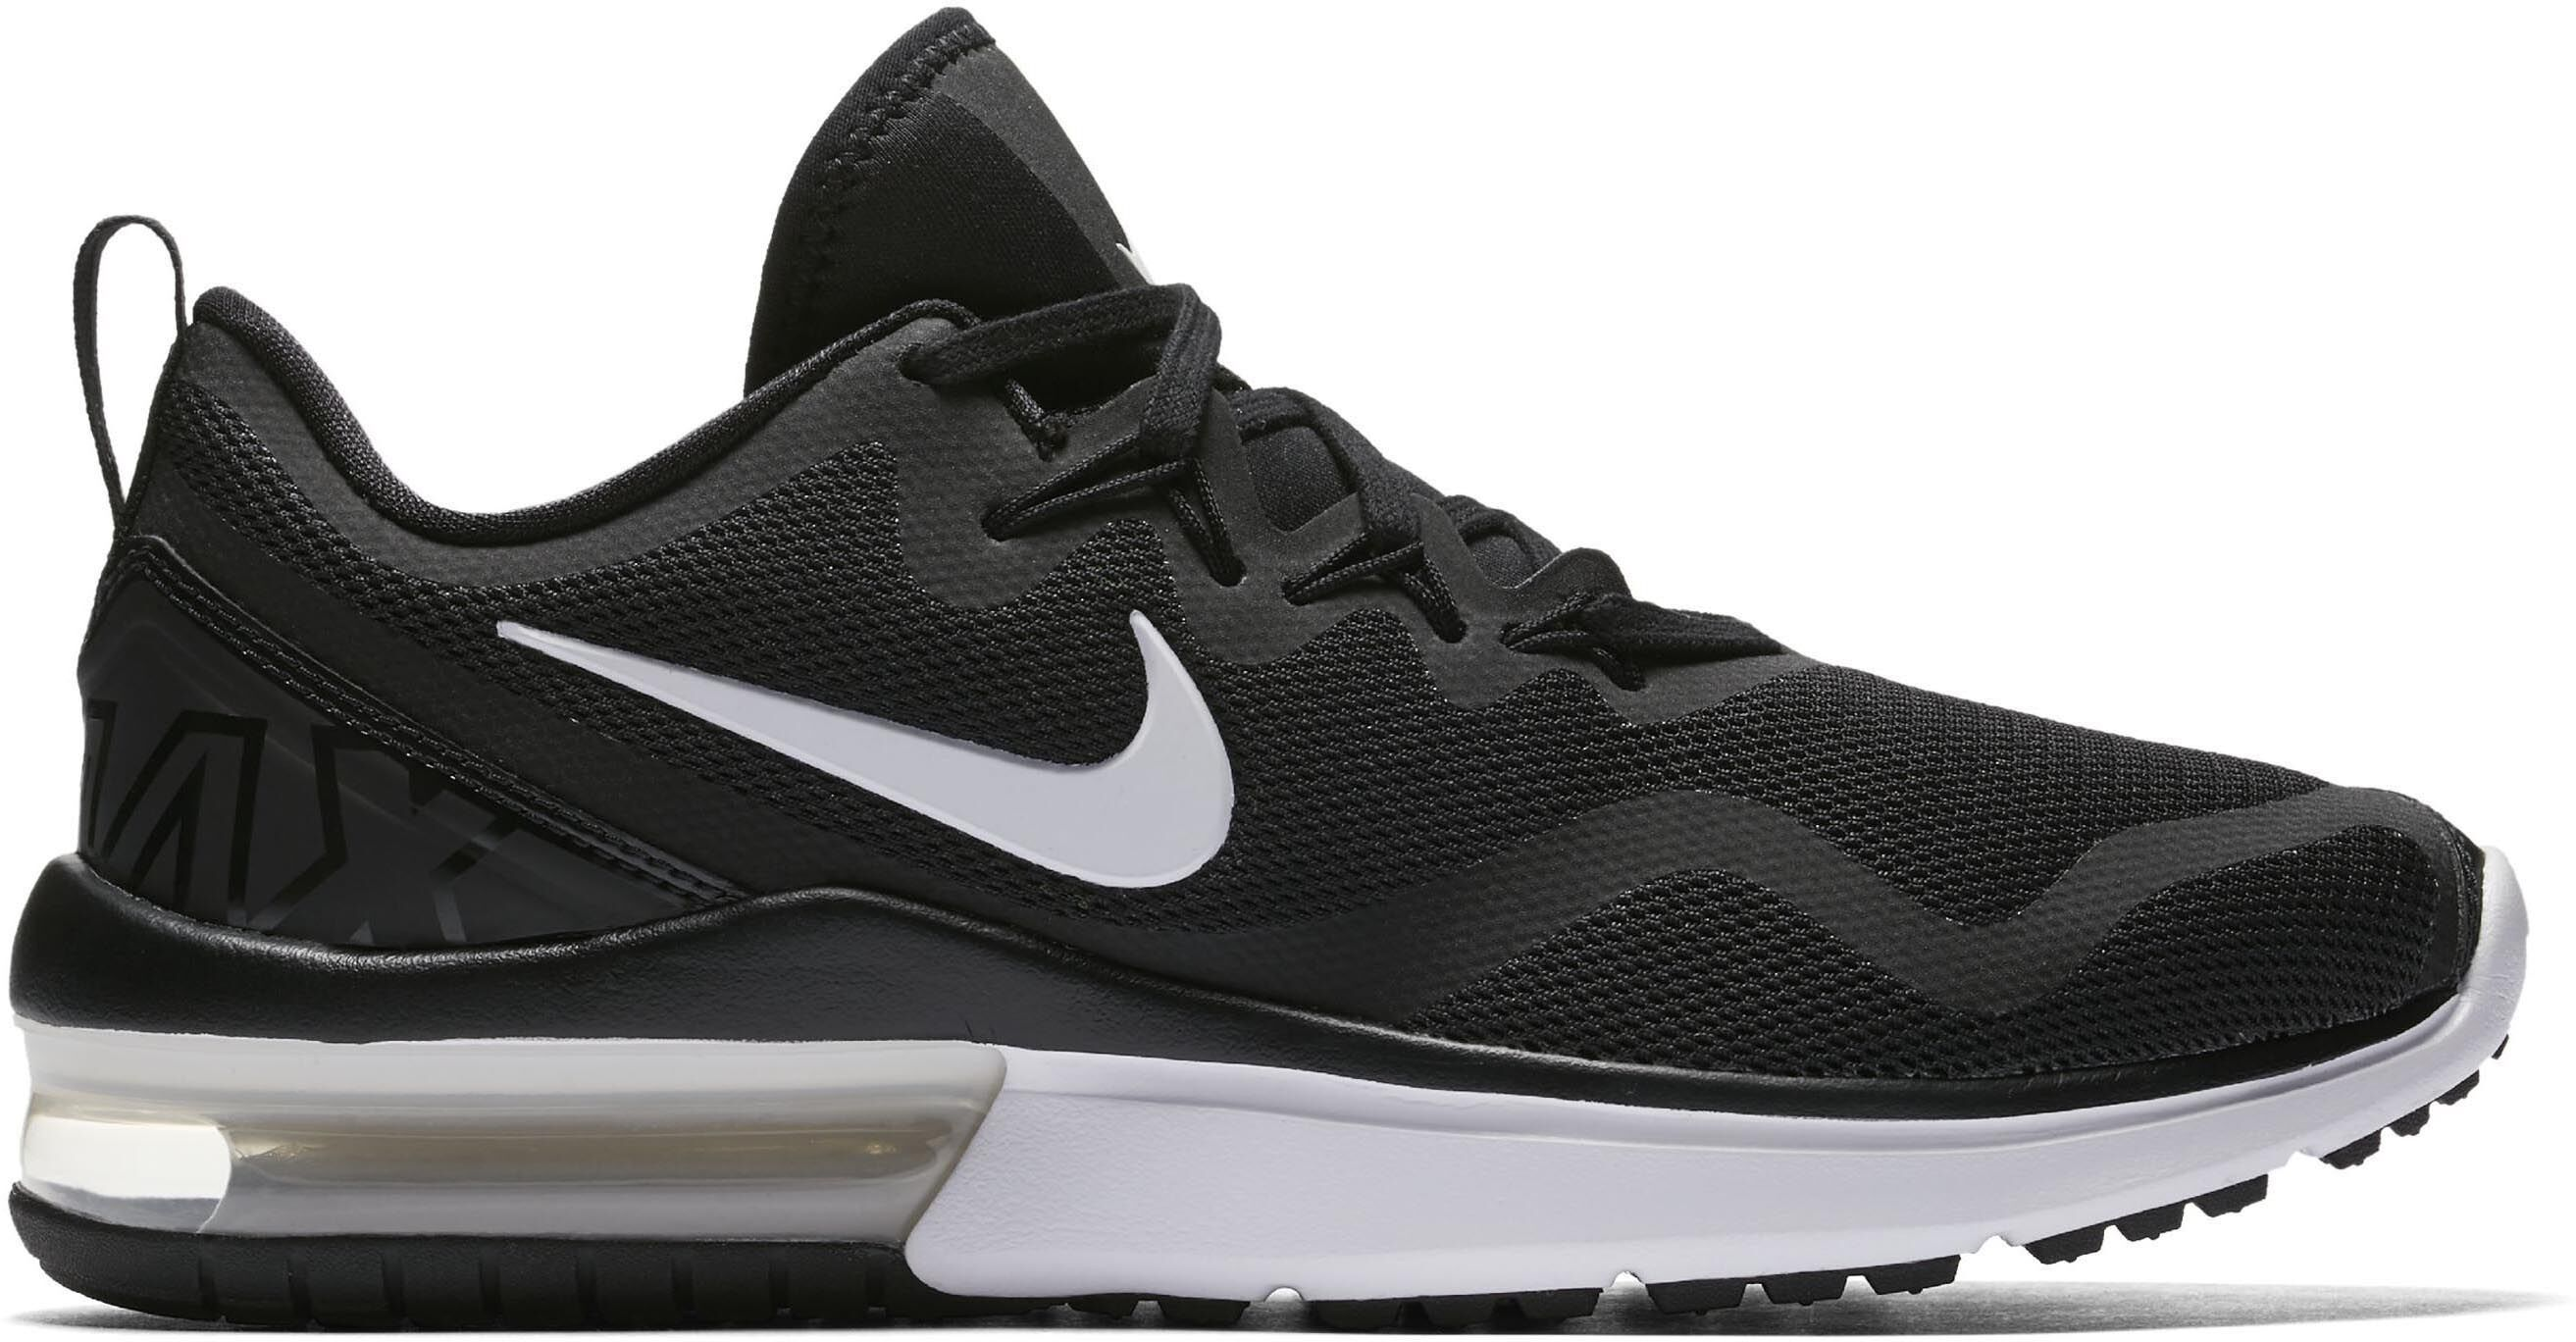 fbd846b6 coupon code for todas cuero nike air max ee115 c9012